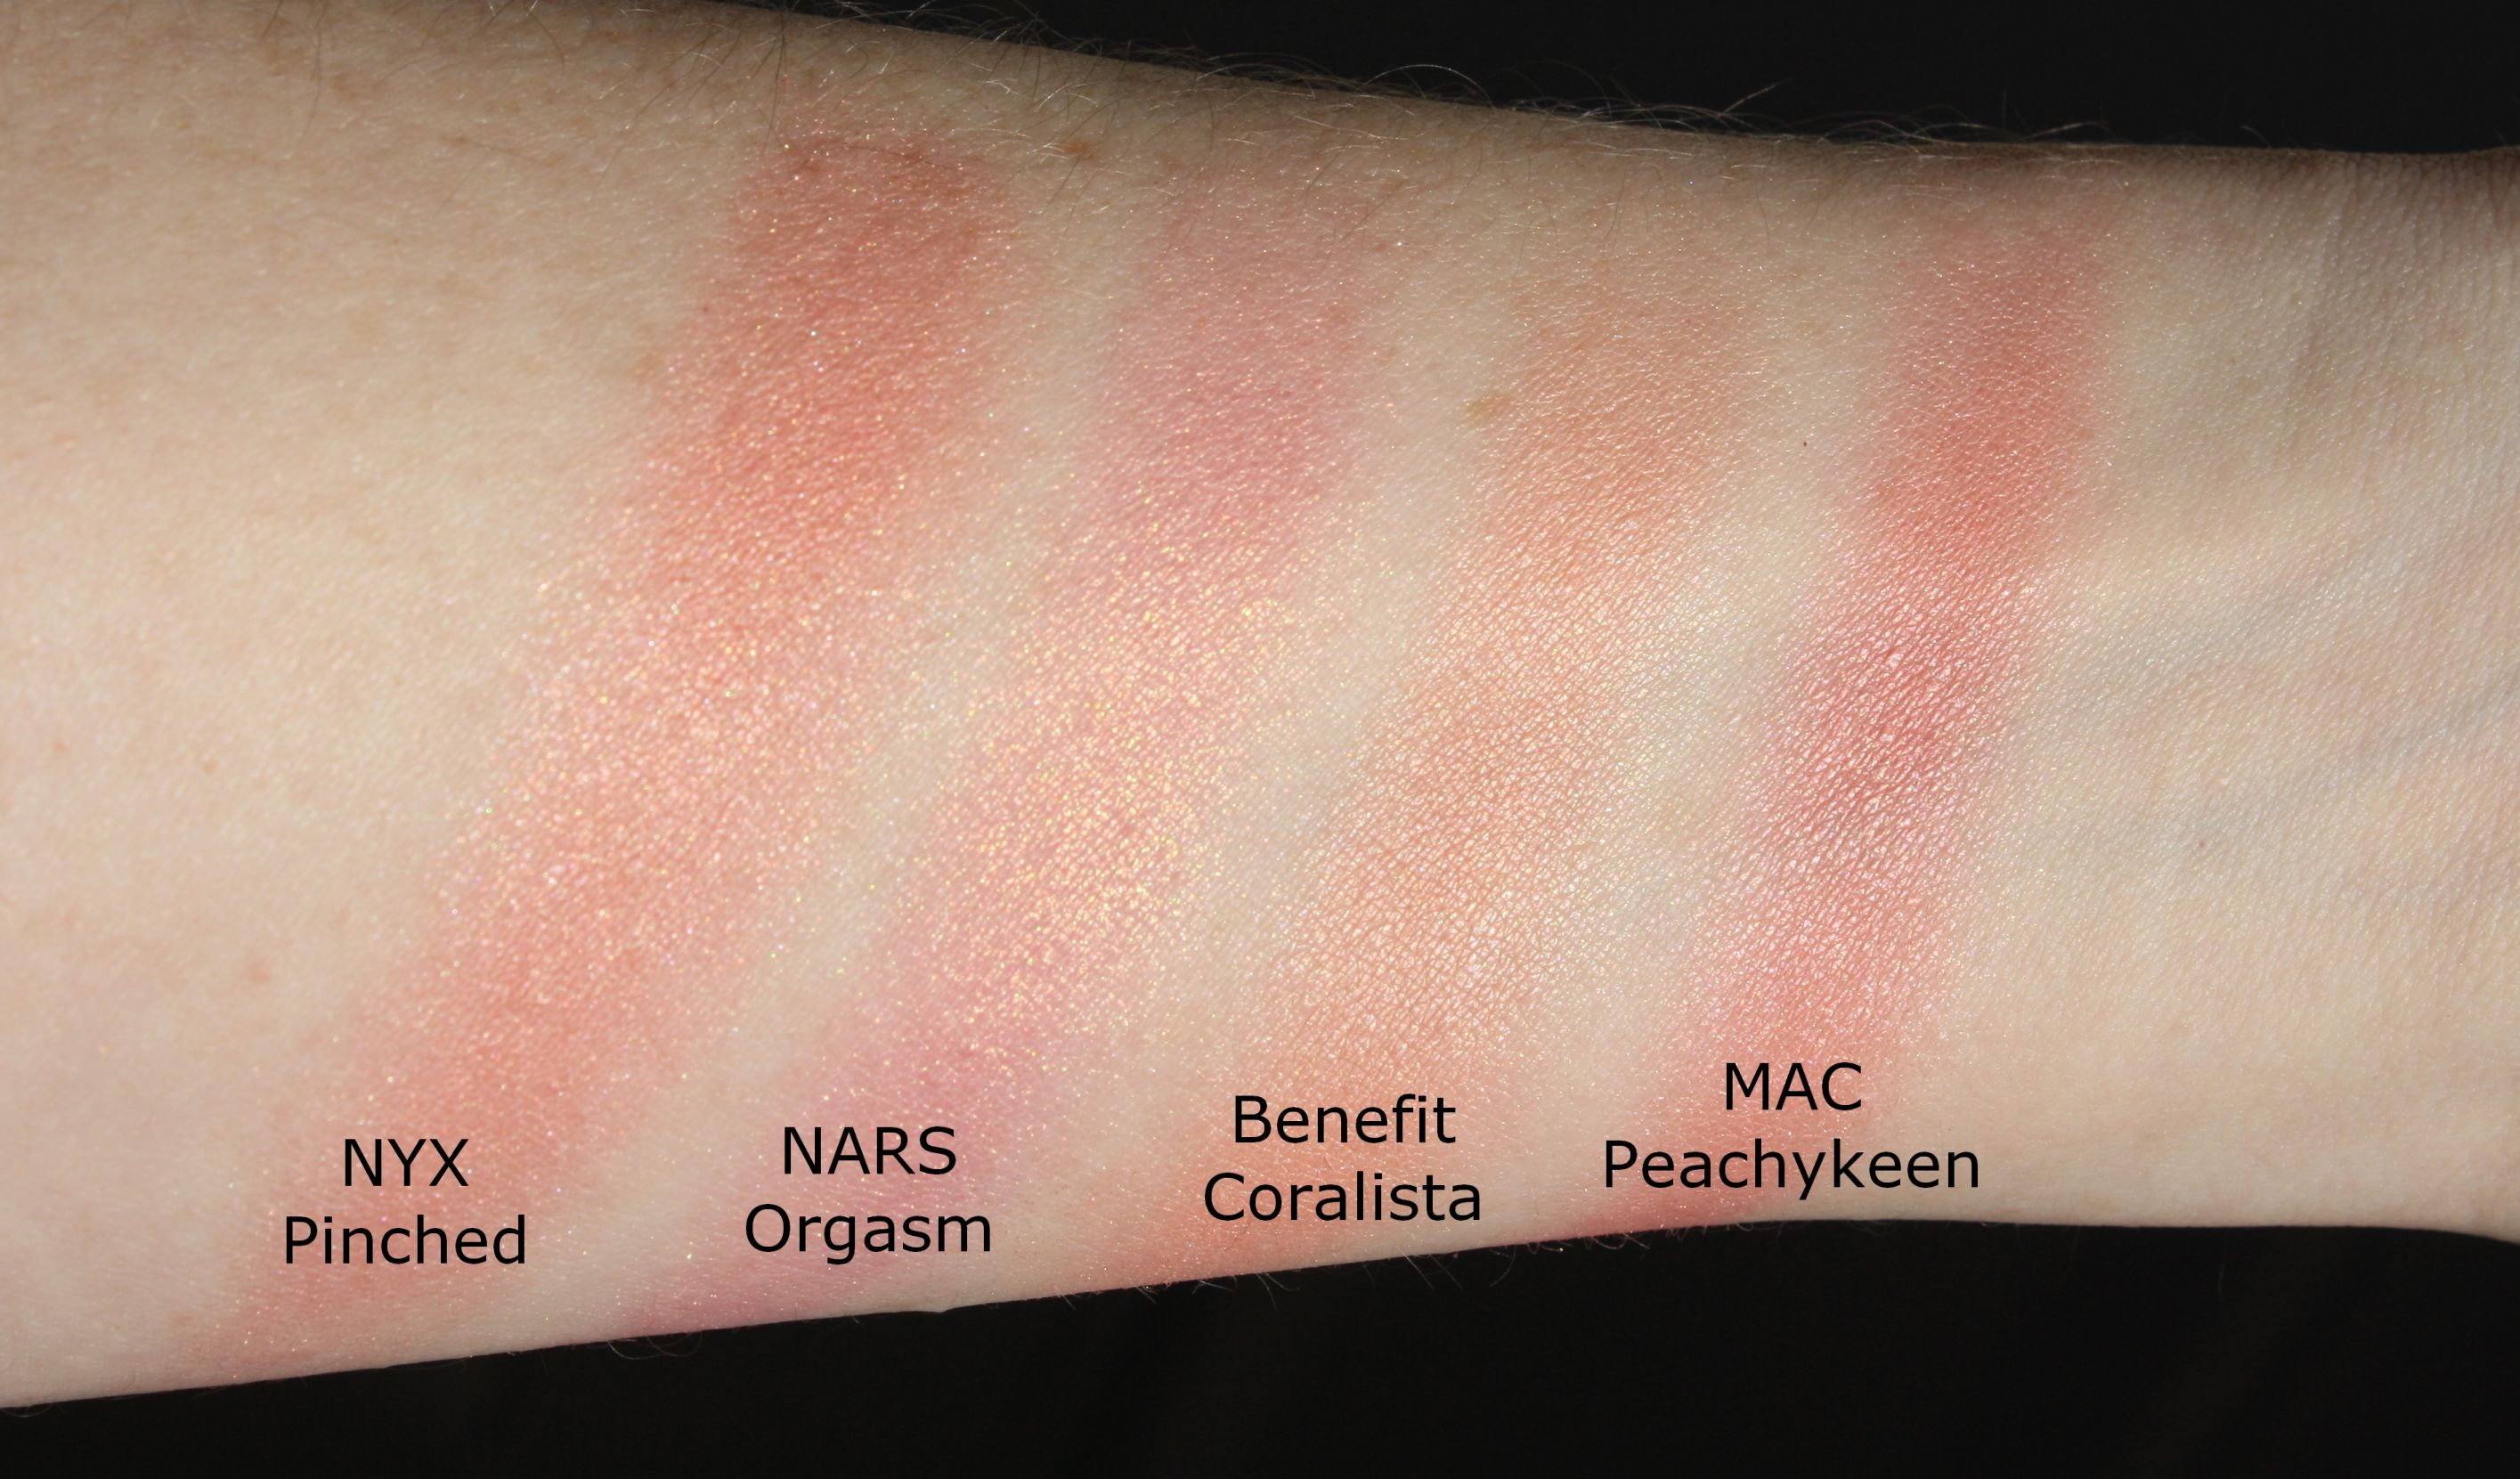 swatches NYX Pinched compared to NARS Orgasm, Benefit Coralista and MAC  Peachykeen